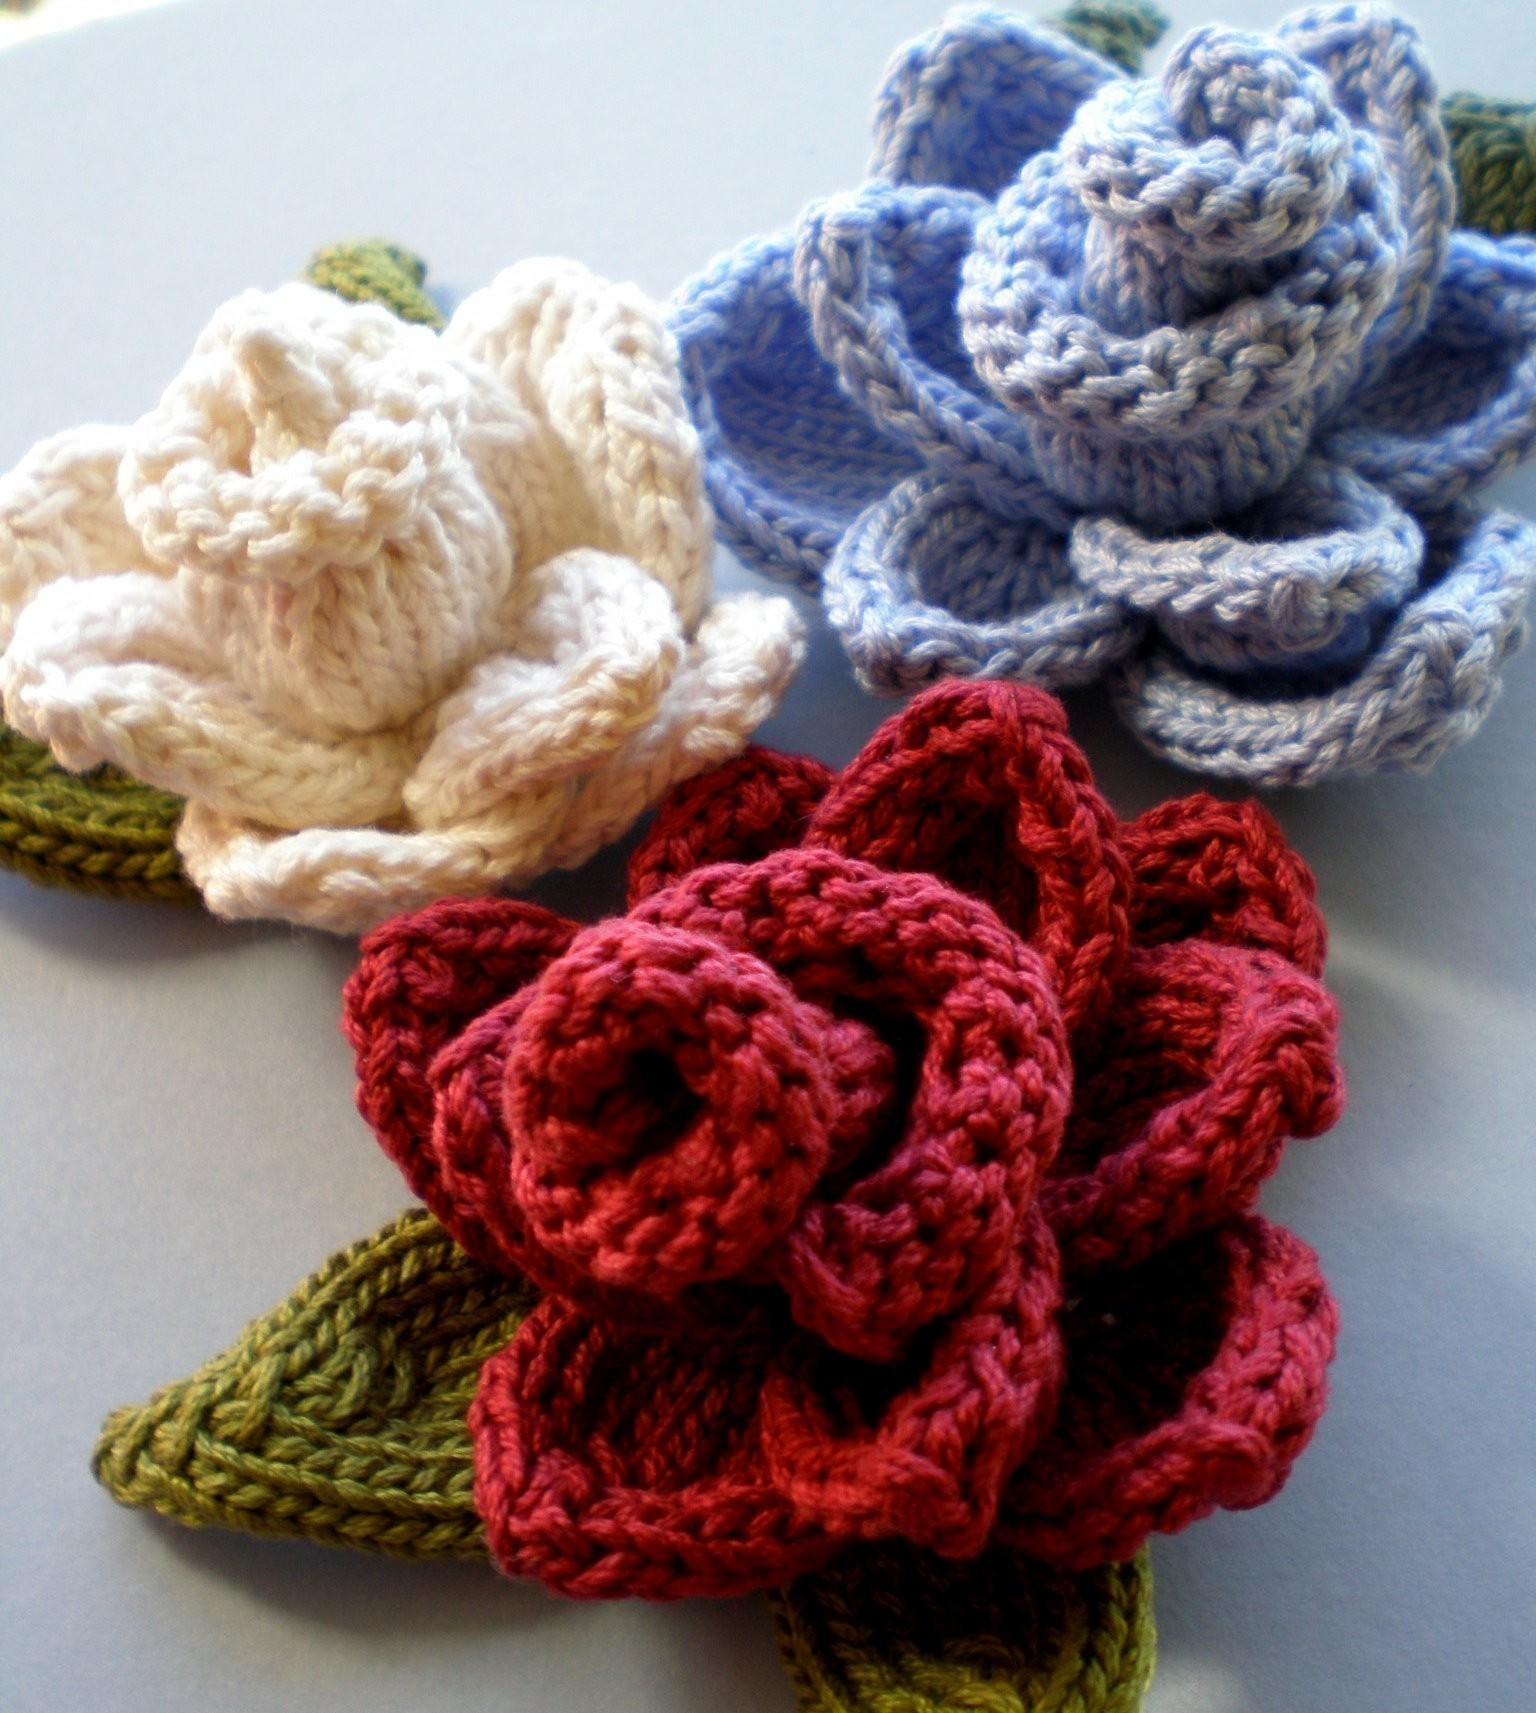 Knitting Flowers Patterns Free : Knit flower pattern a knitting